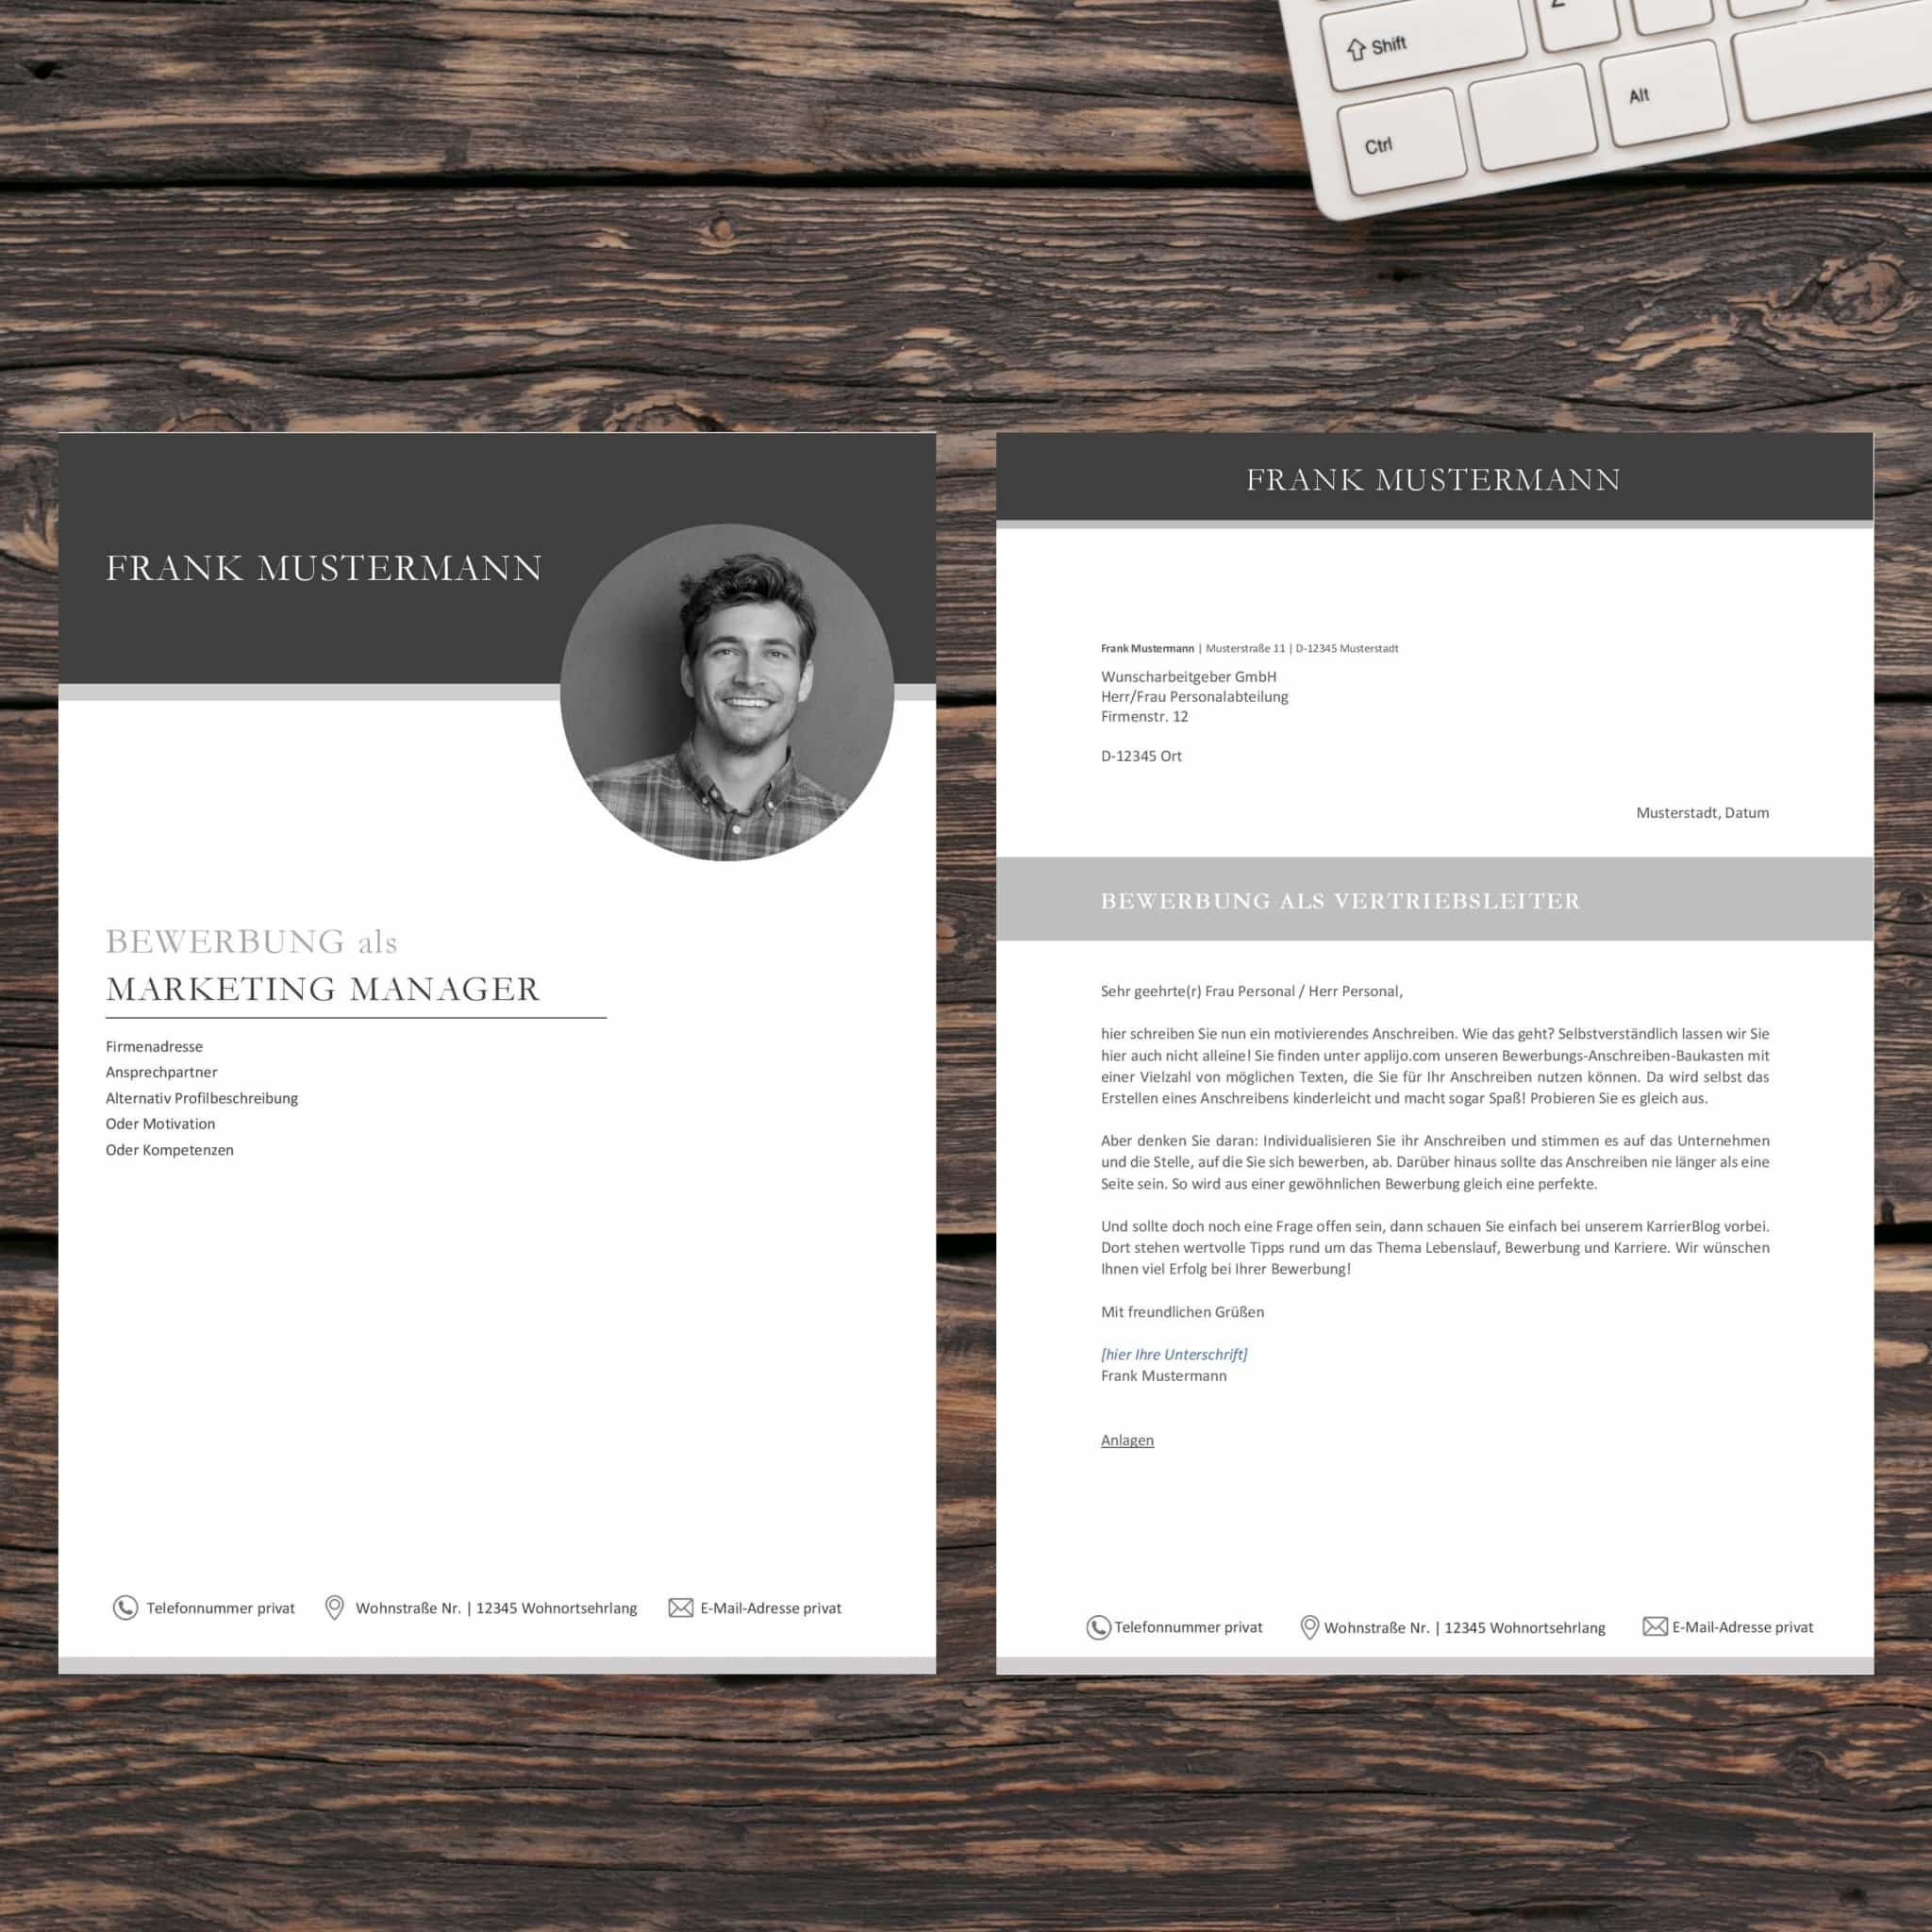 20 Lebenslauf Marketing Manager Deutsch In 2020 With Images Invitation Cards Invitation Maker Invitation Template